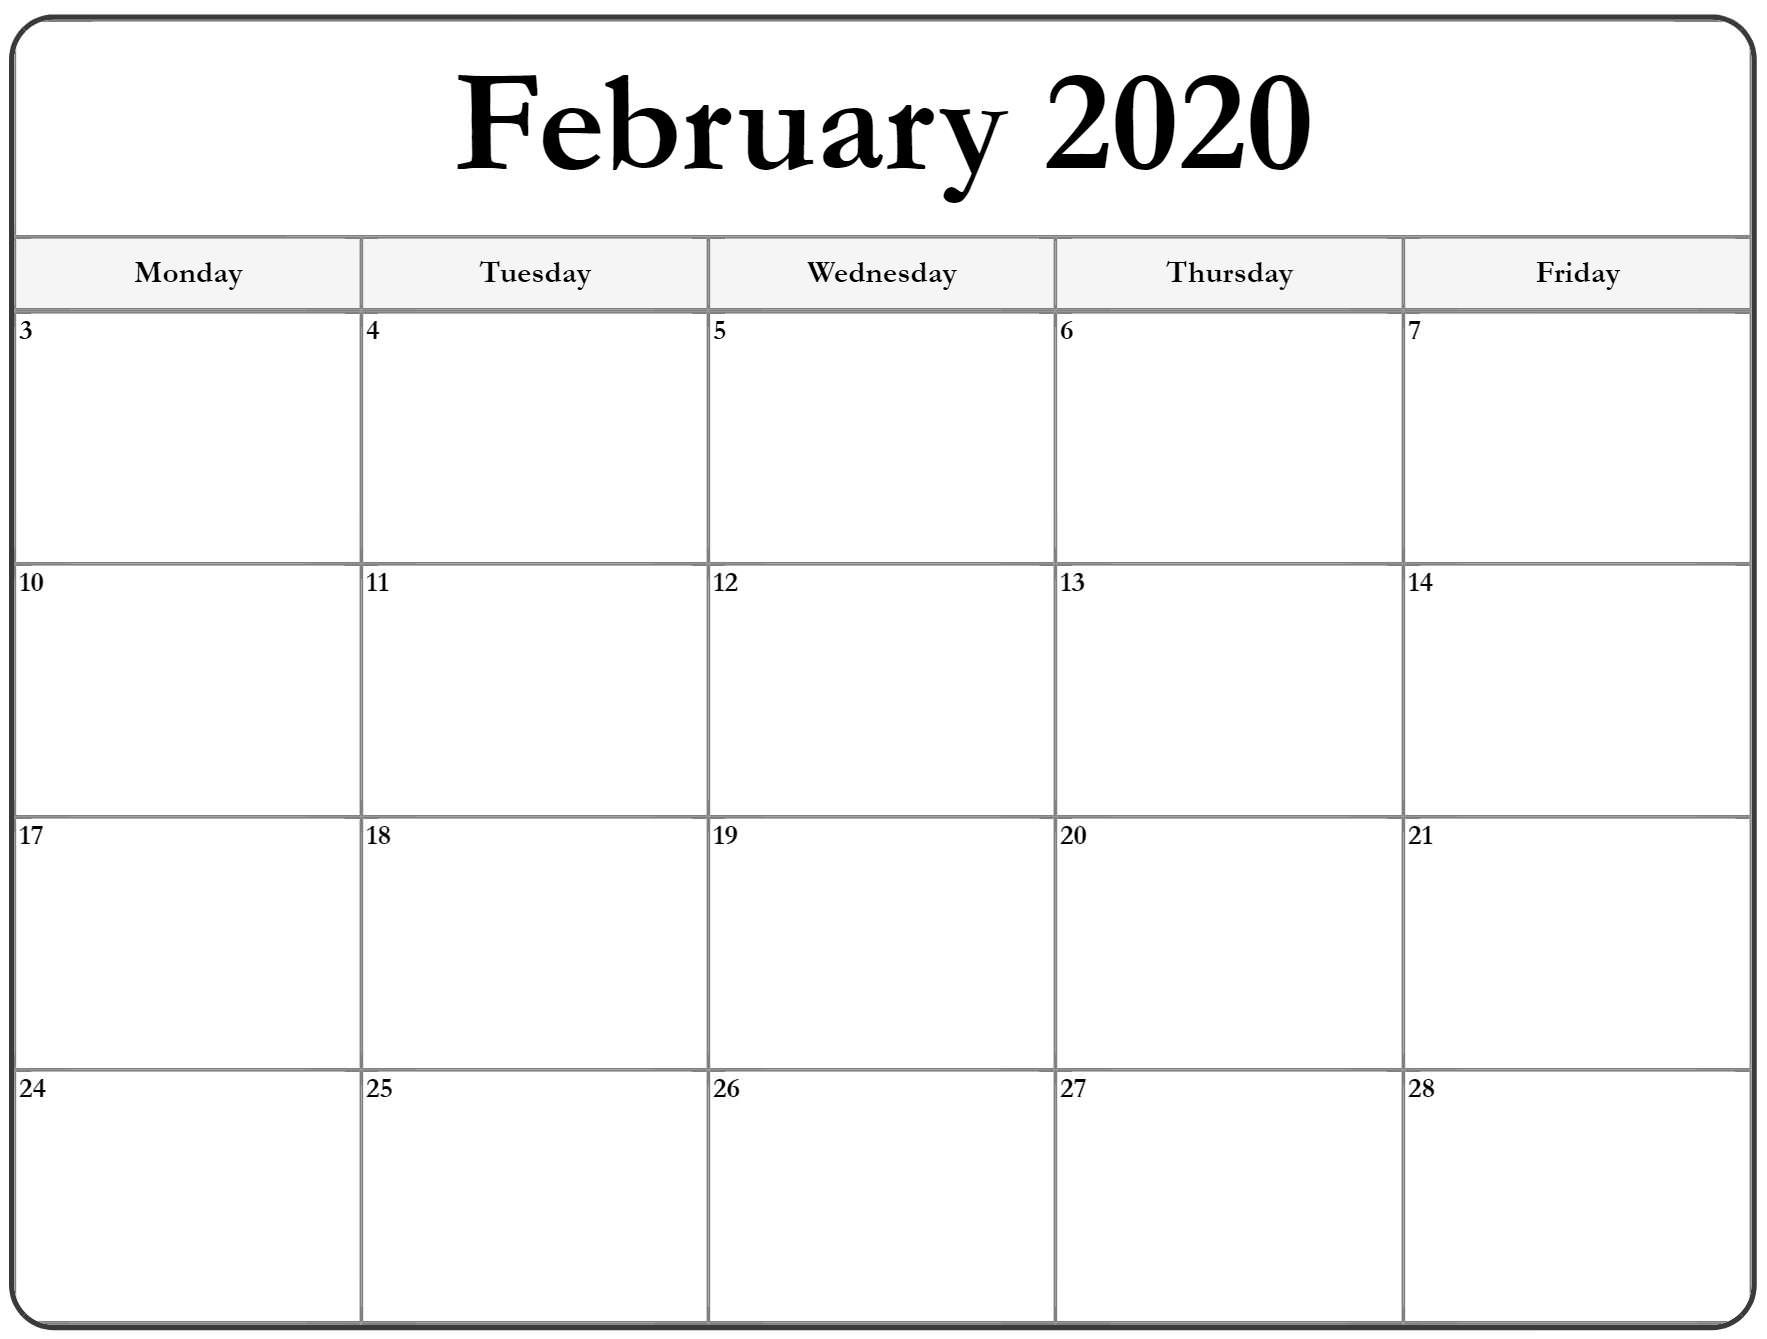 February 2020 Monday Calendar | Monday To Sunday Printable Calender For Mon Through Friday